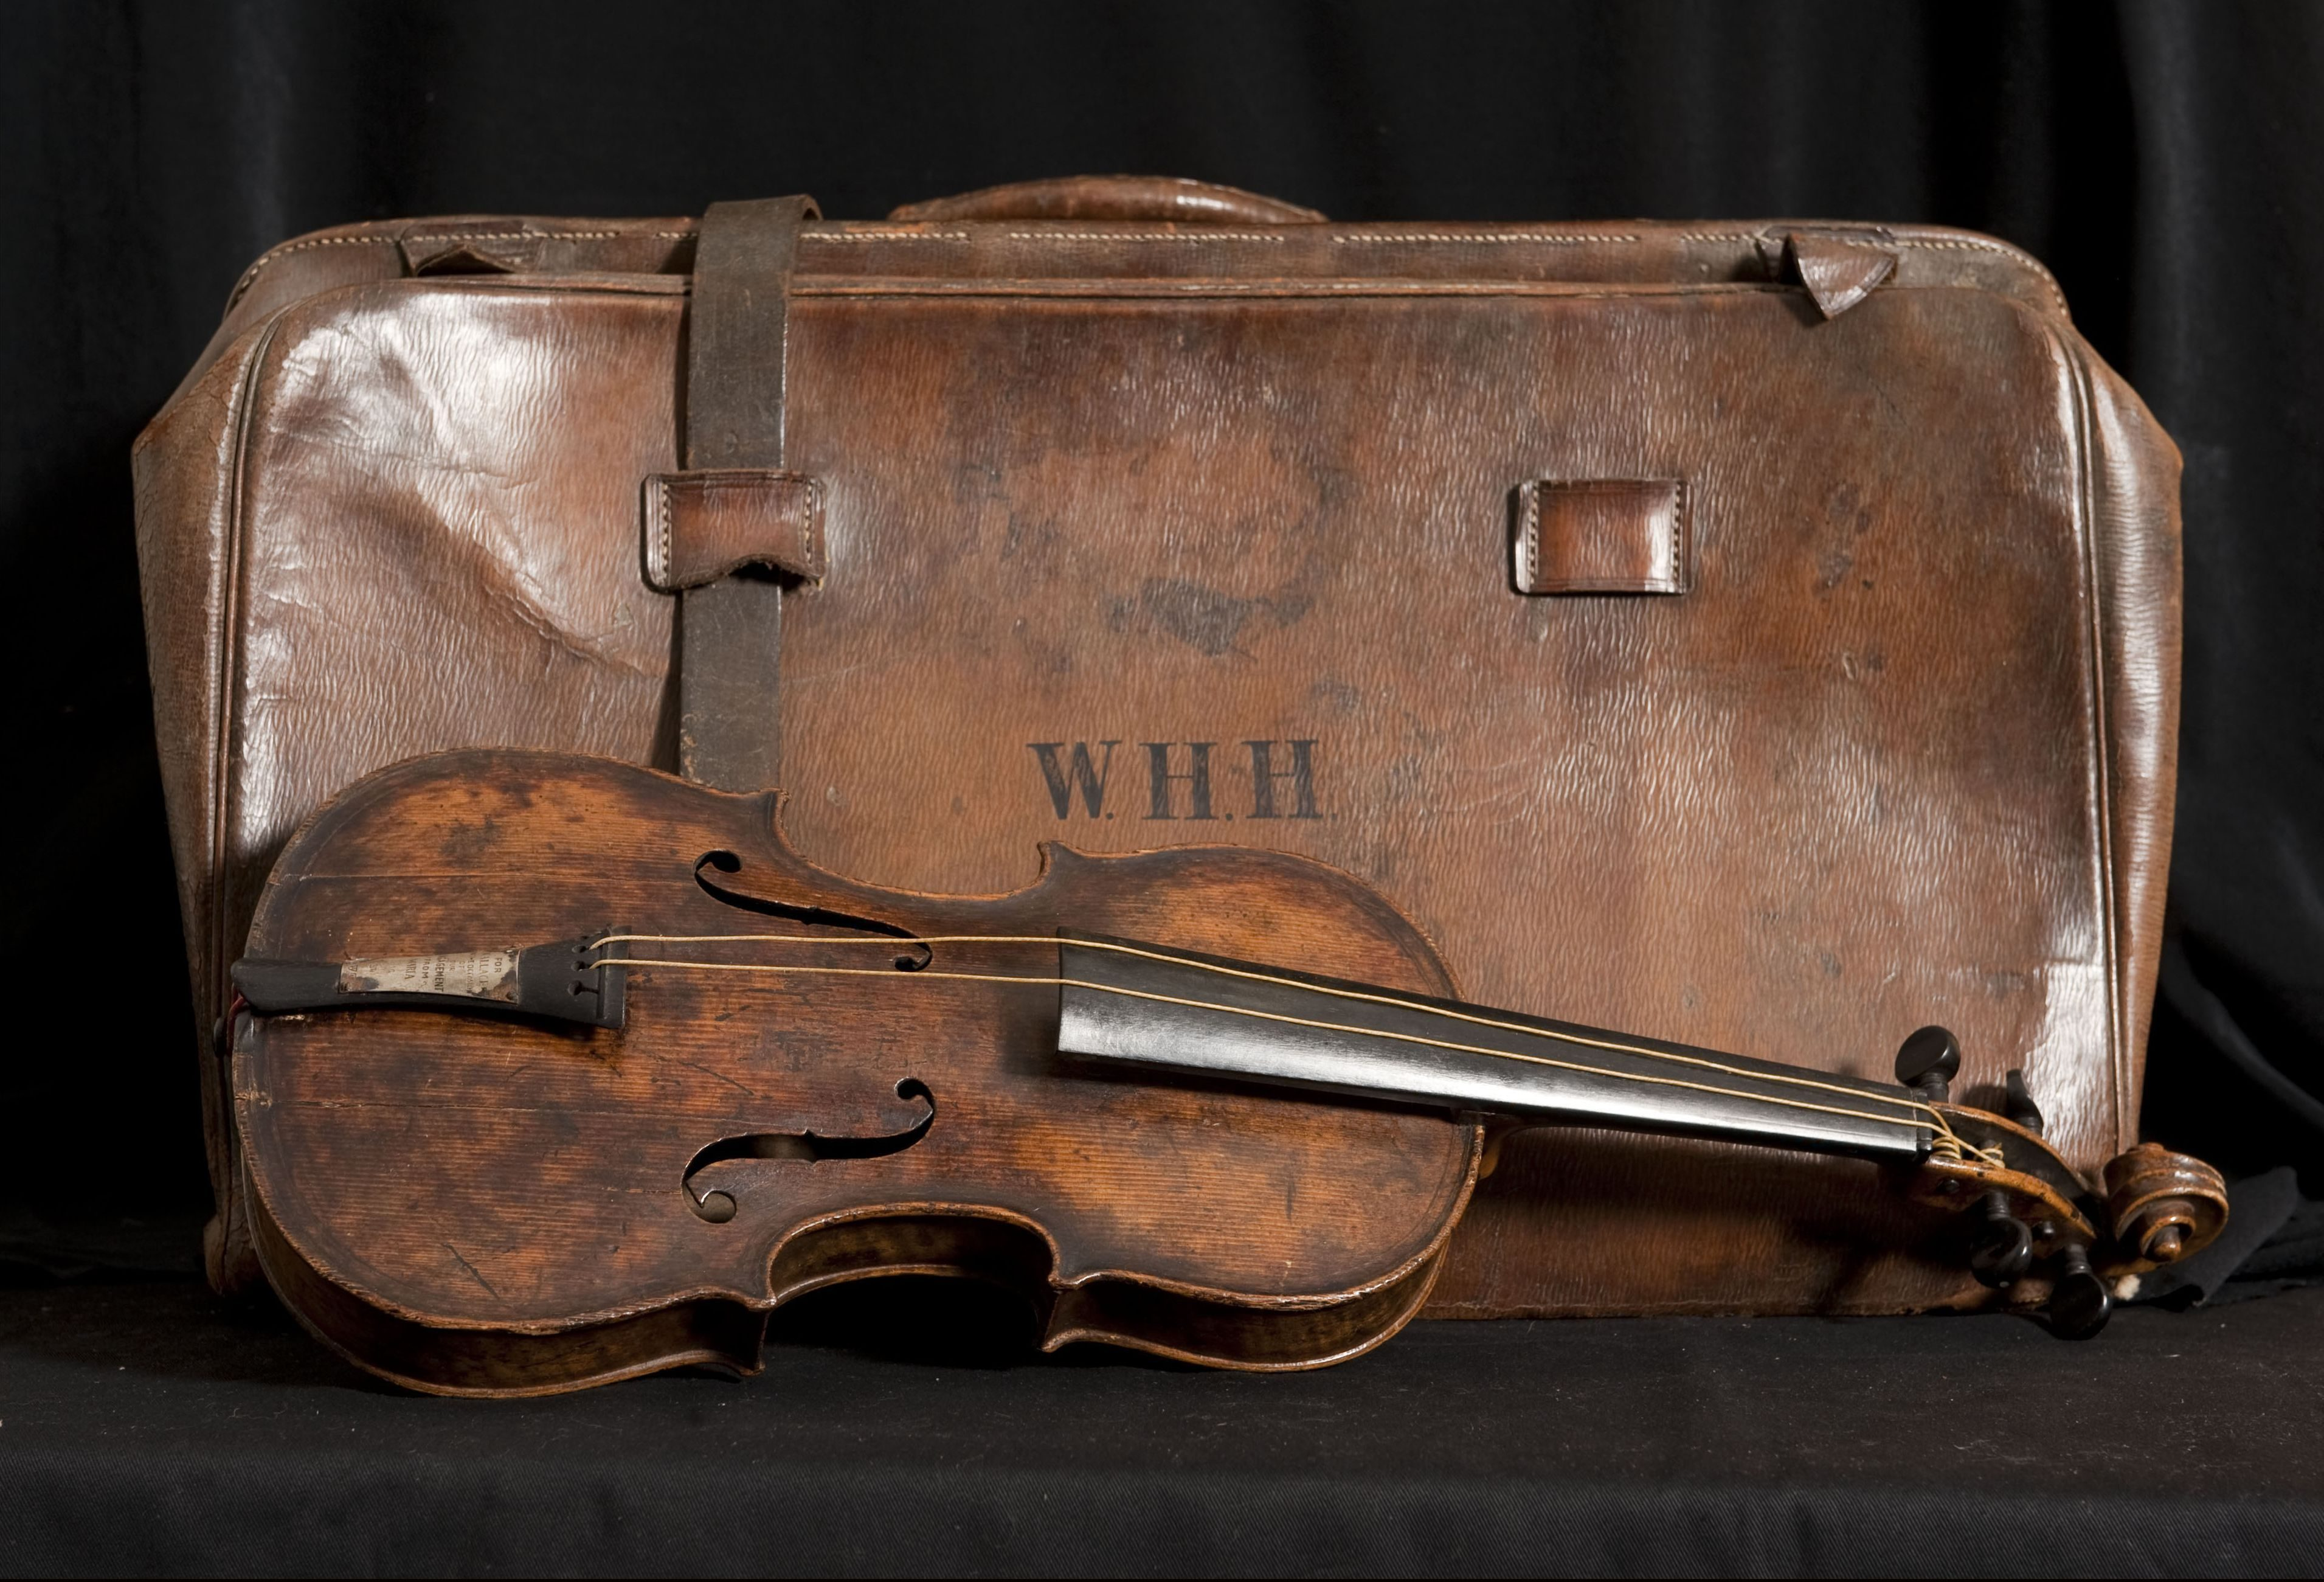 Mandatory Credit: Photo by Bournemouth News/Shutterstock (3245064f) The violin and its case Violin played as Titanic sank sells for £900,000, Wiltshire, Britain - 20 Oct 2013 The historic violin that was famously played as the Titanic sank has been sold at auction in Wiltshire for £900,000. The wooden instrument has been proven to be the one used by Wallace Hartley as his band famously played on to help keep the passengers calm during the disaster. Its existence and survival only emerged in 2006 when the son of an amateur violinist who was gifted it by her music teacher in the early 1940s contacted an auctioneers. It had taken seven years for the Devizes auction house, Henry Aldridge & Son, to authenticate the instrument. Several experts were used, including forensic scientists who said the wood still contained salt deposits from the sea water. It is said that the violin survived because it was in a leather case strapped to Mr Harley's body. The new owner of the instrument has remained anonymous but is believed to be British.